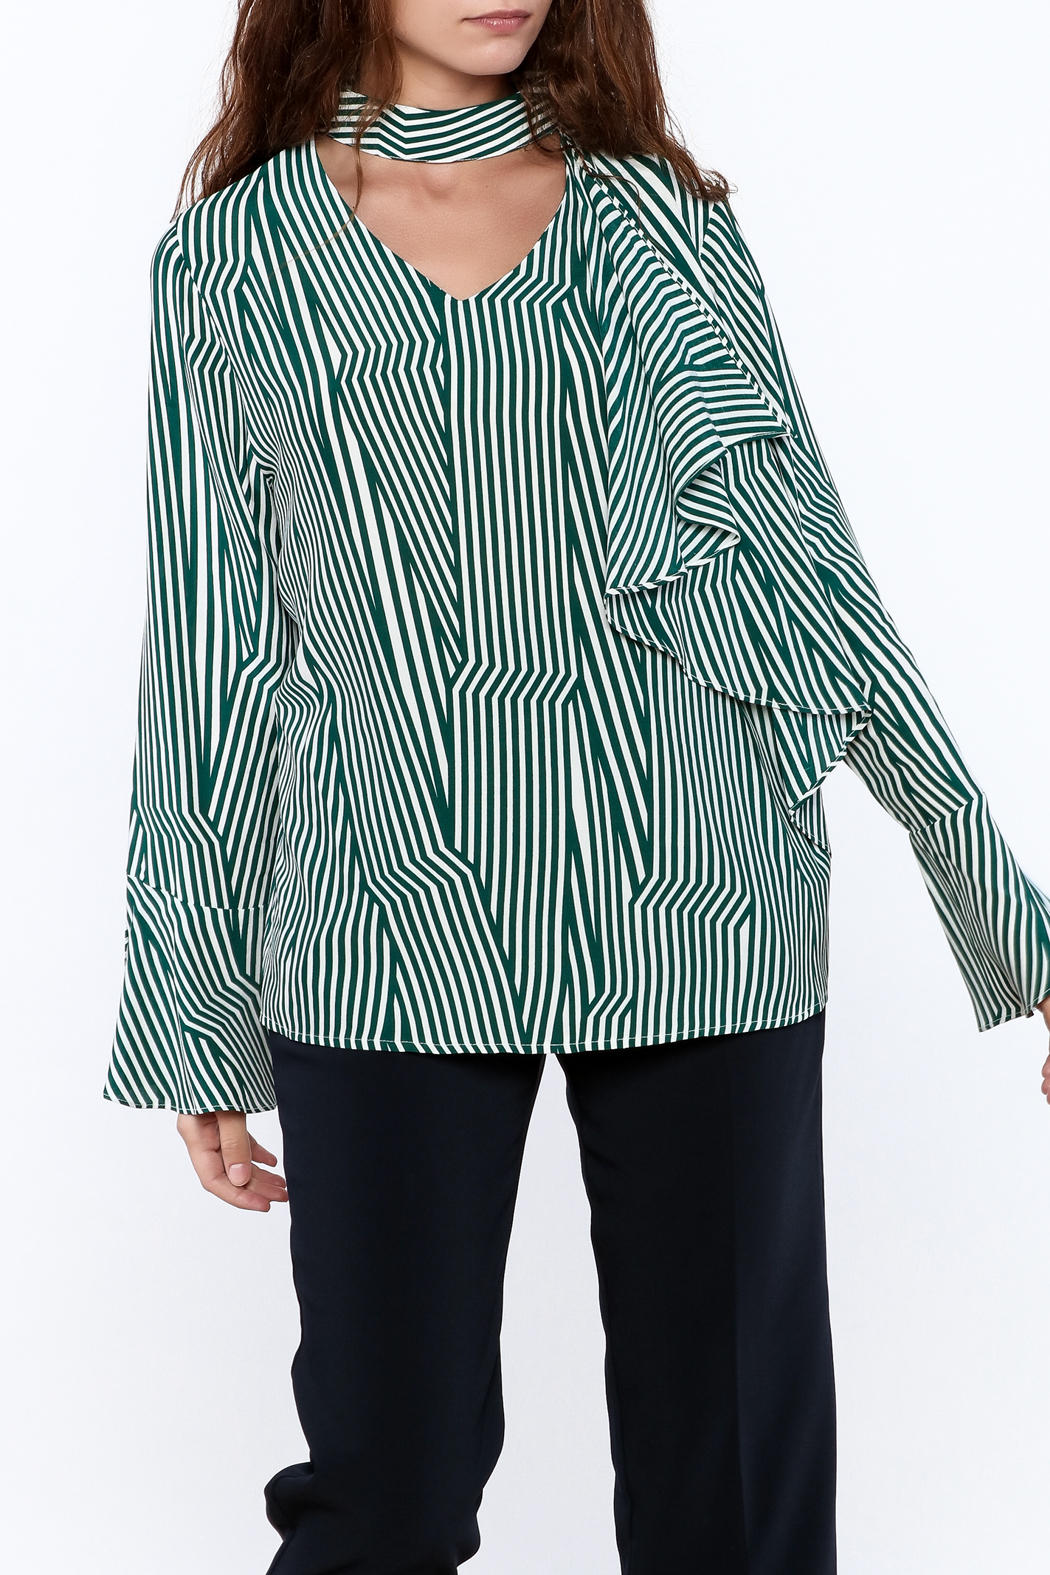 Pinkyotto Crooked Stripe Print Top - Front Cropped Image